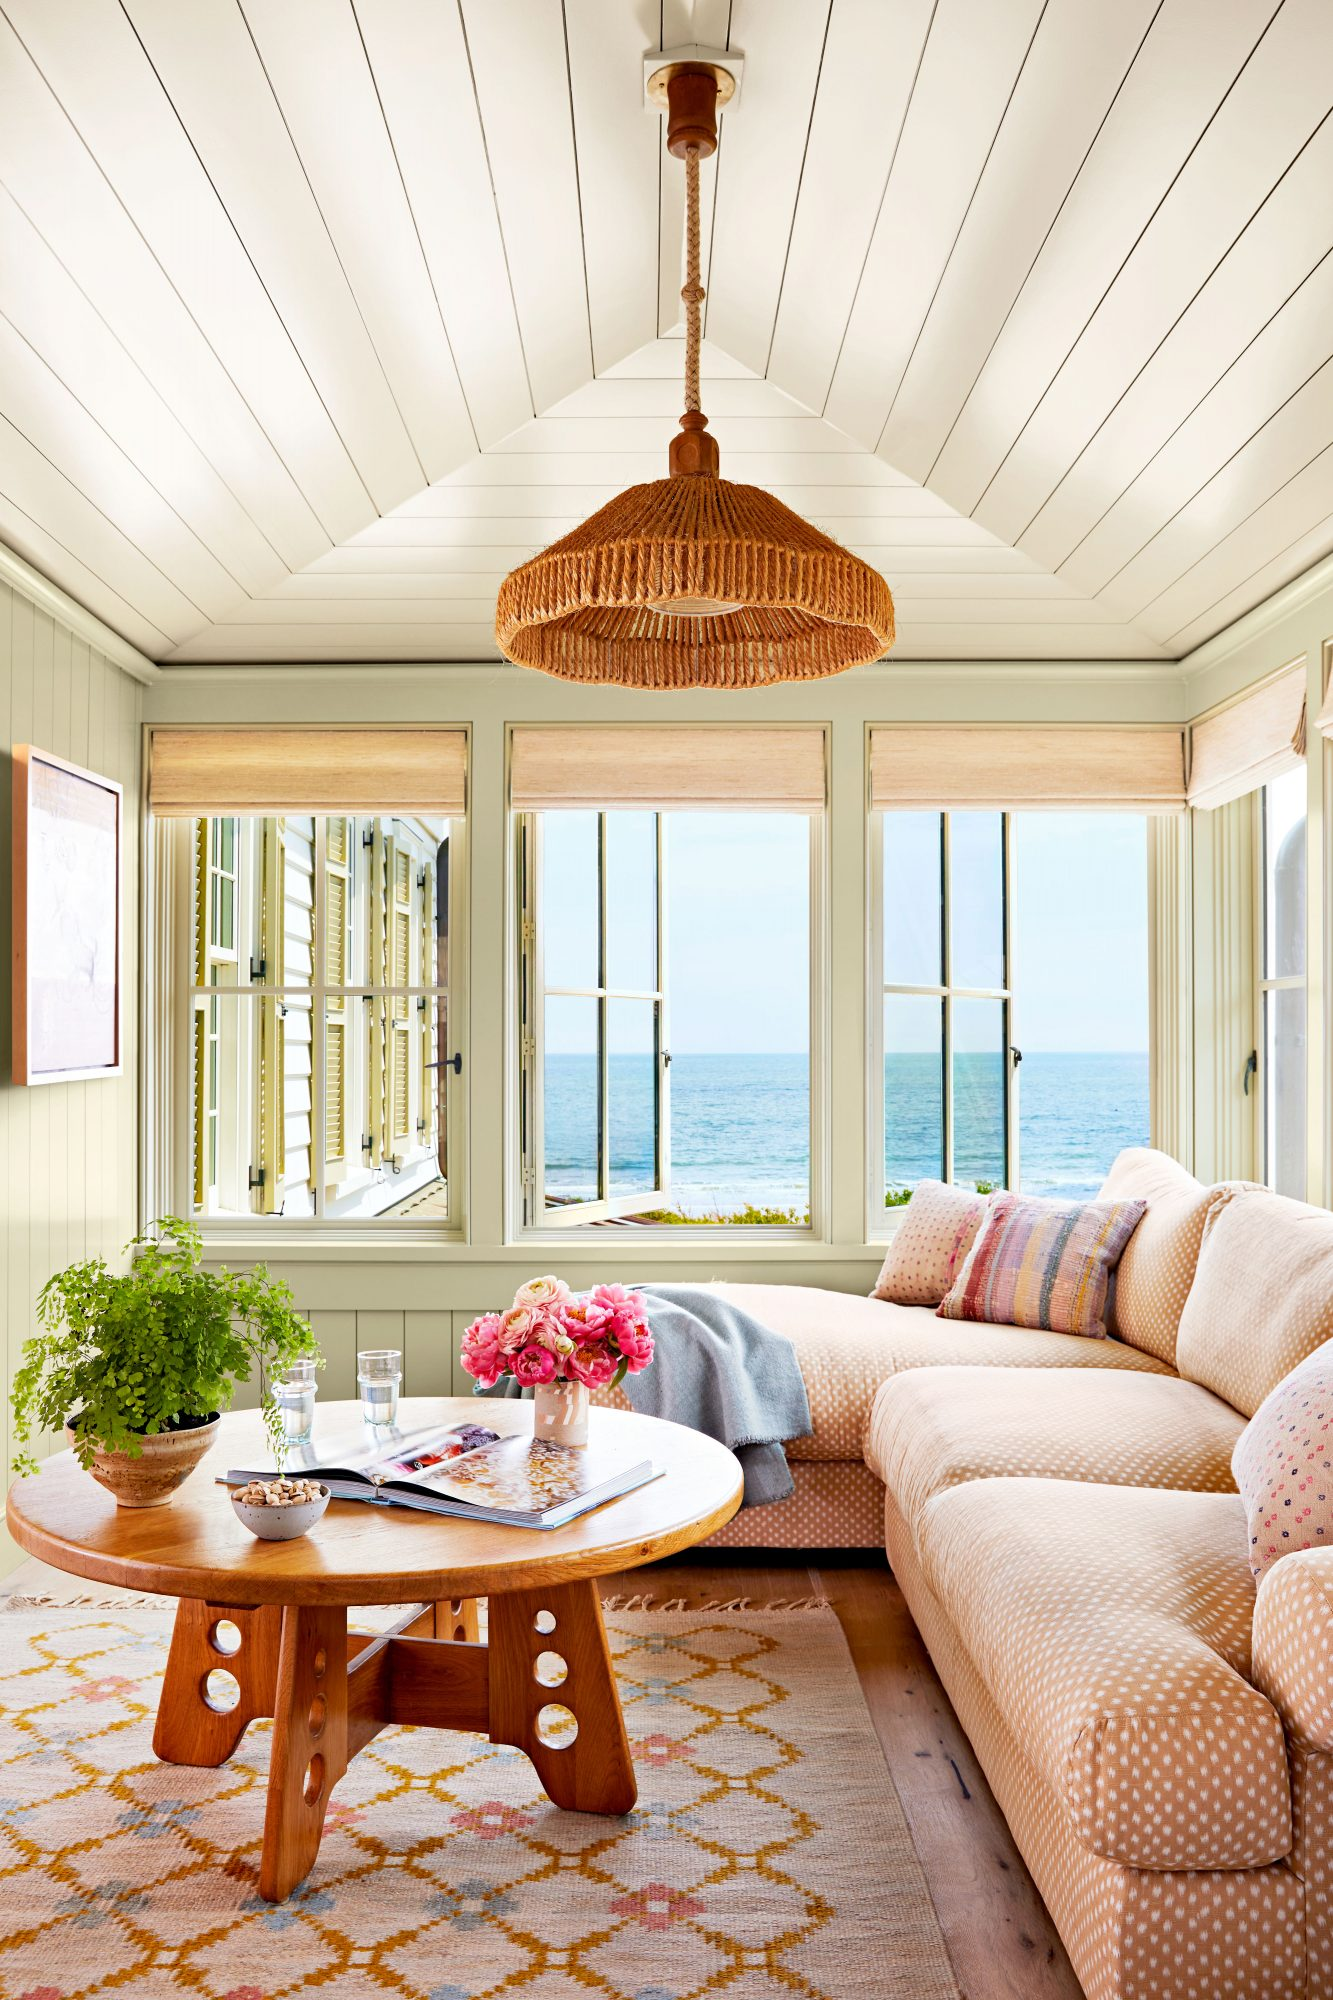 Cozy den with patterned sofa and ocean view